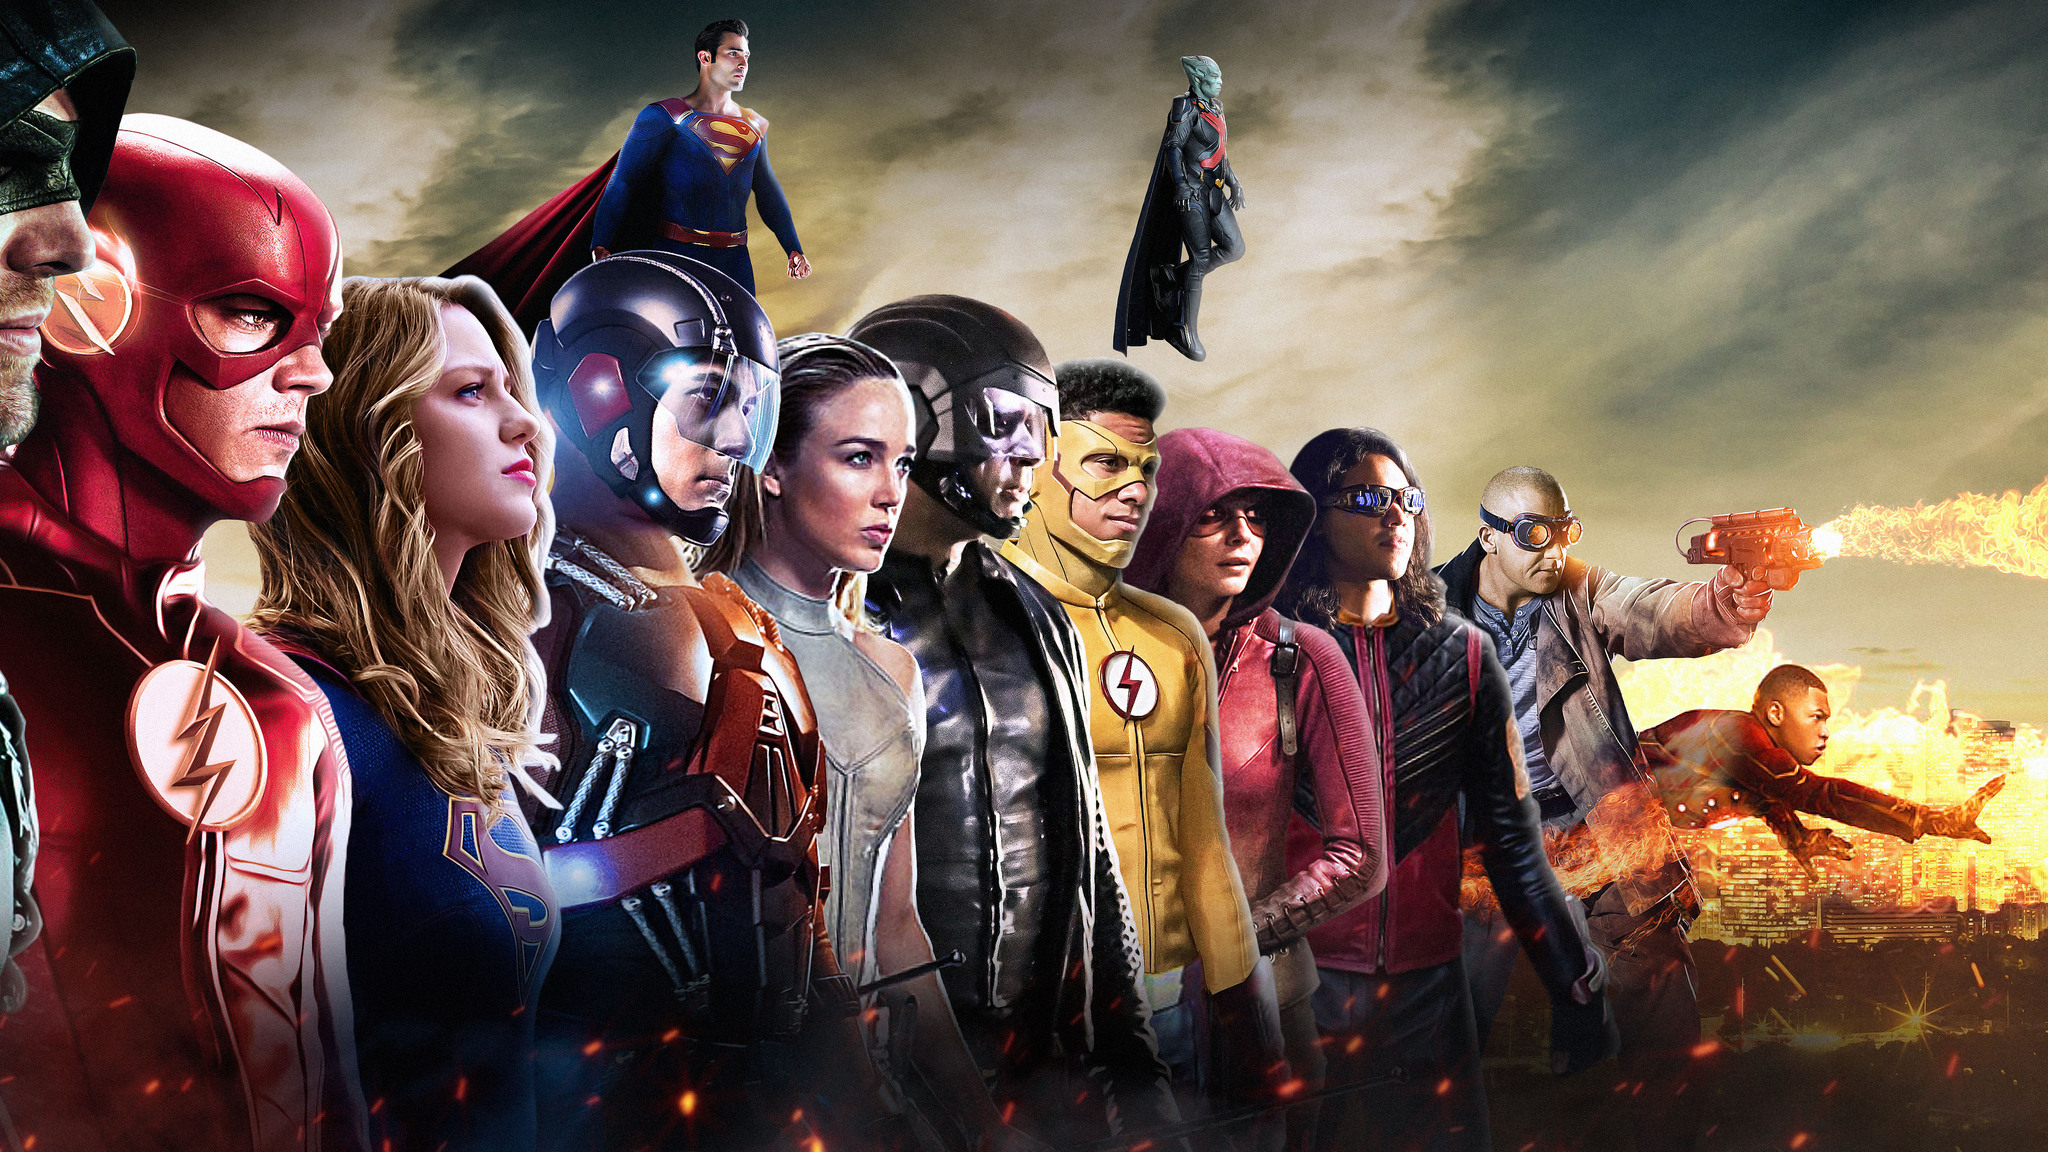 2048x1152 dc cw all superheroes 2048x1152 resolution hd 4k - Tv series wallpaper 4k ...